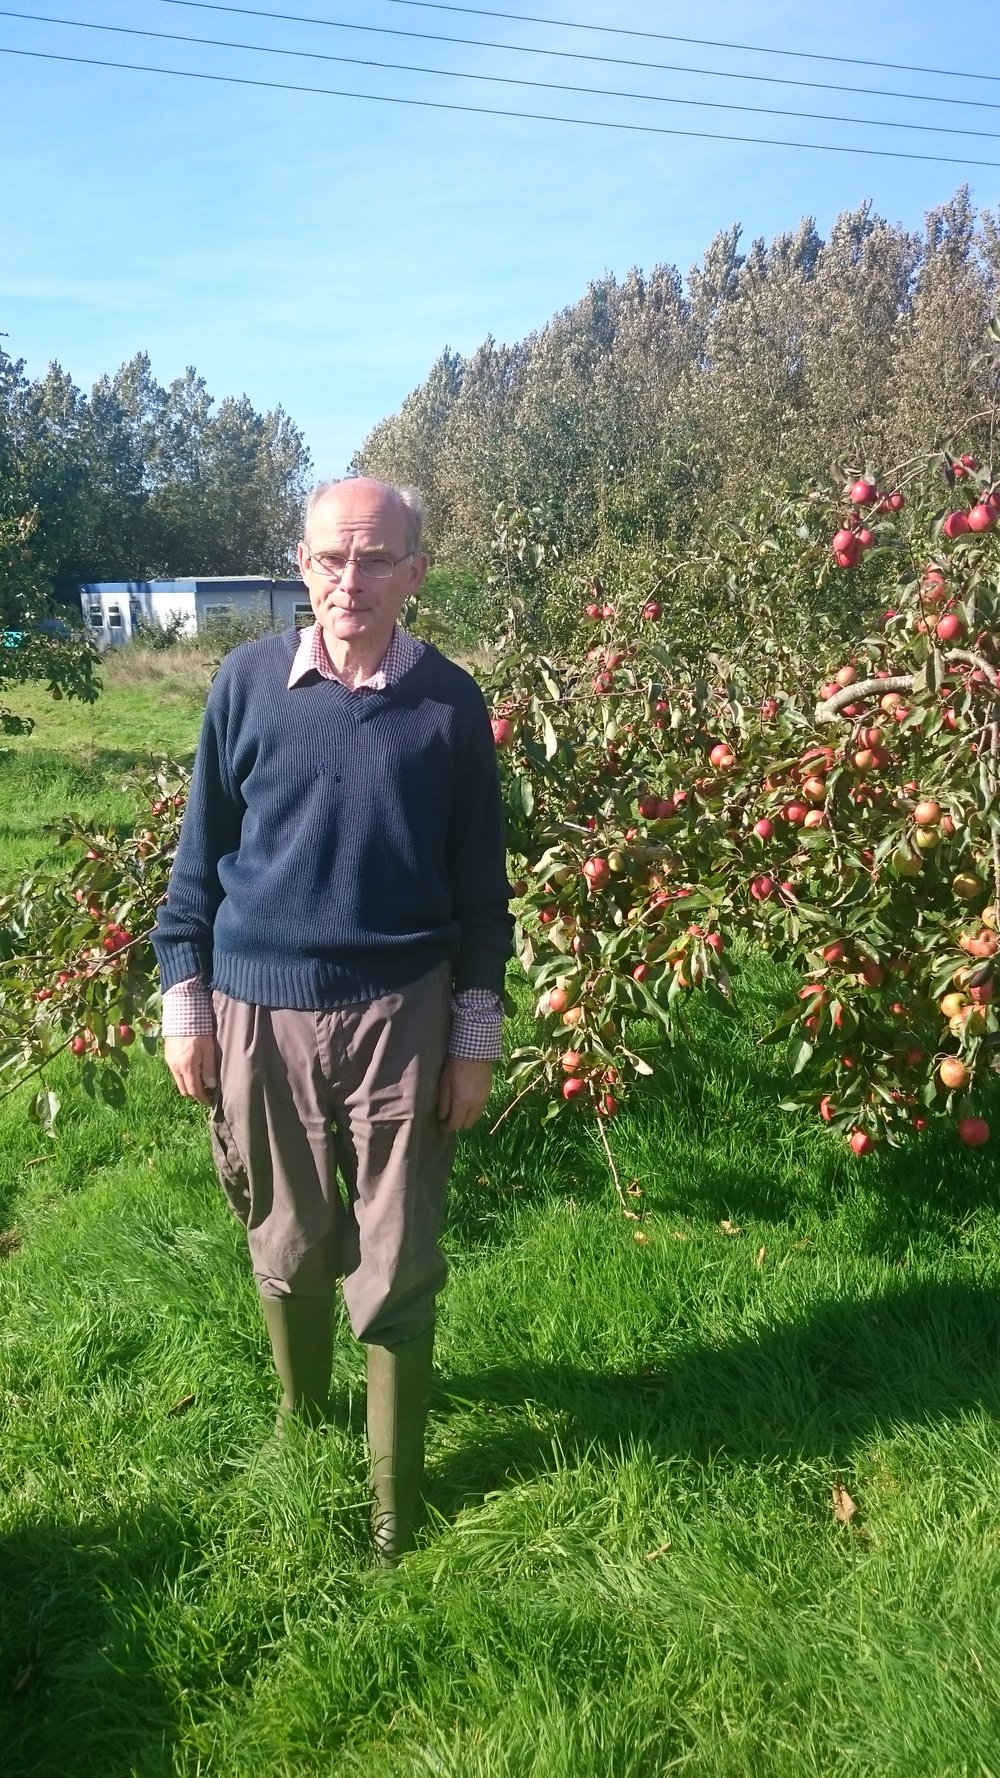 Peter May at Ringmer Community Orchard